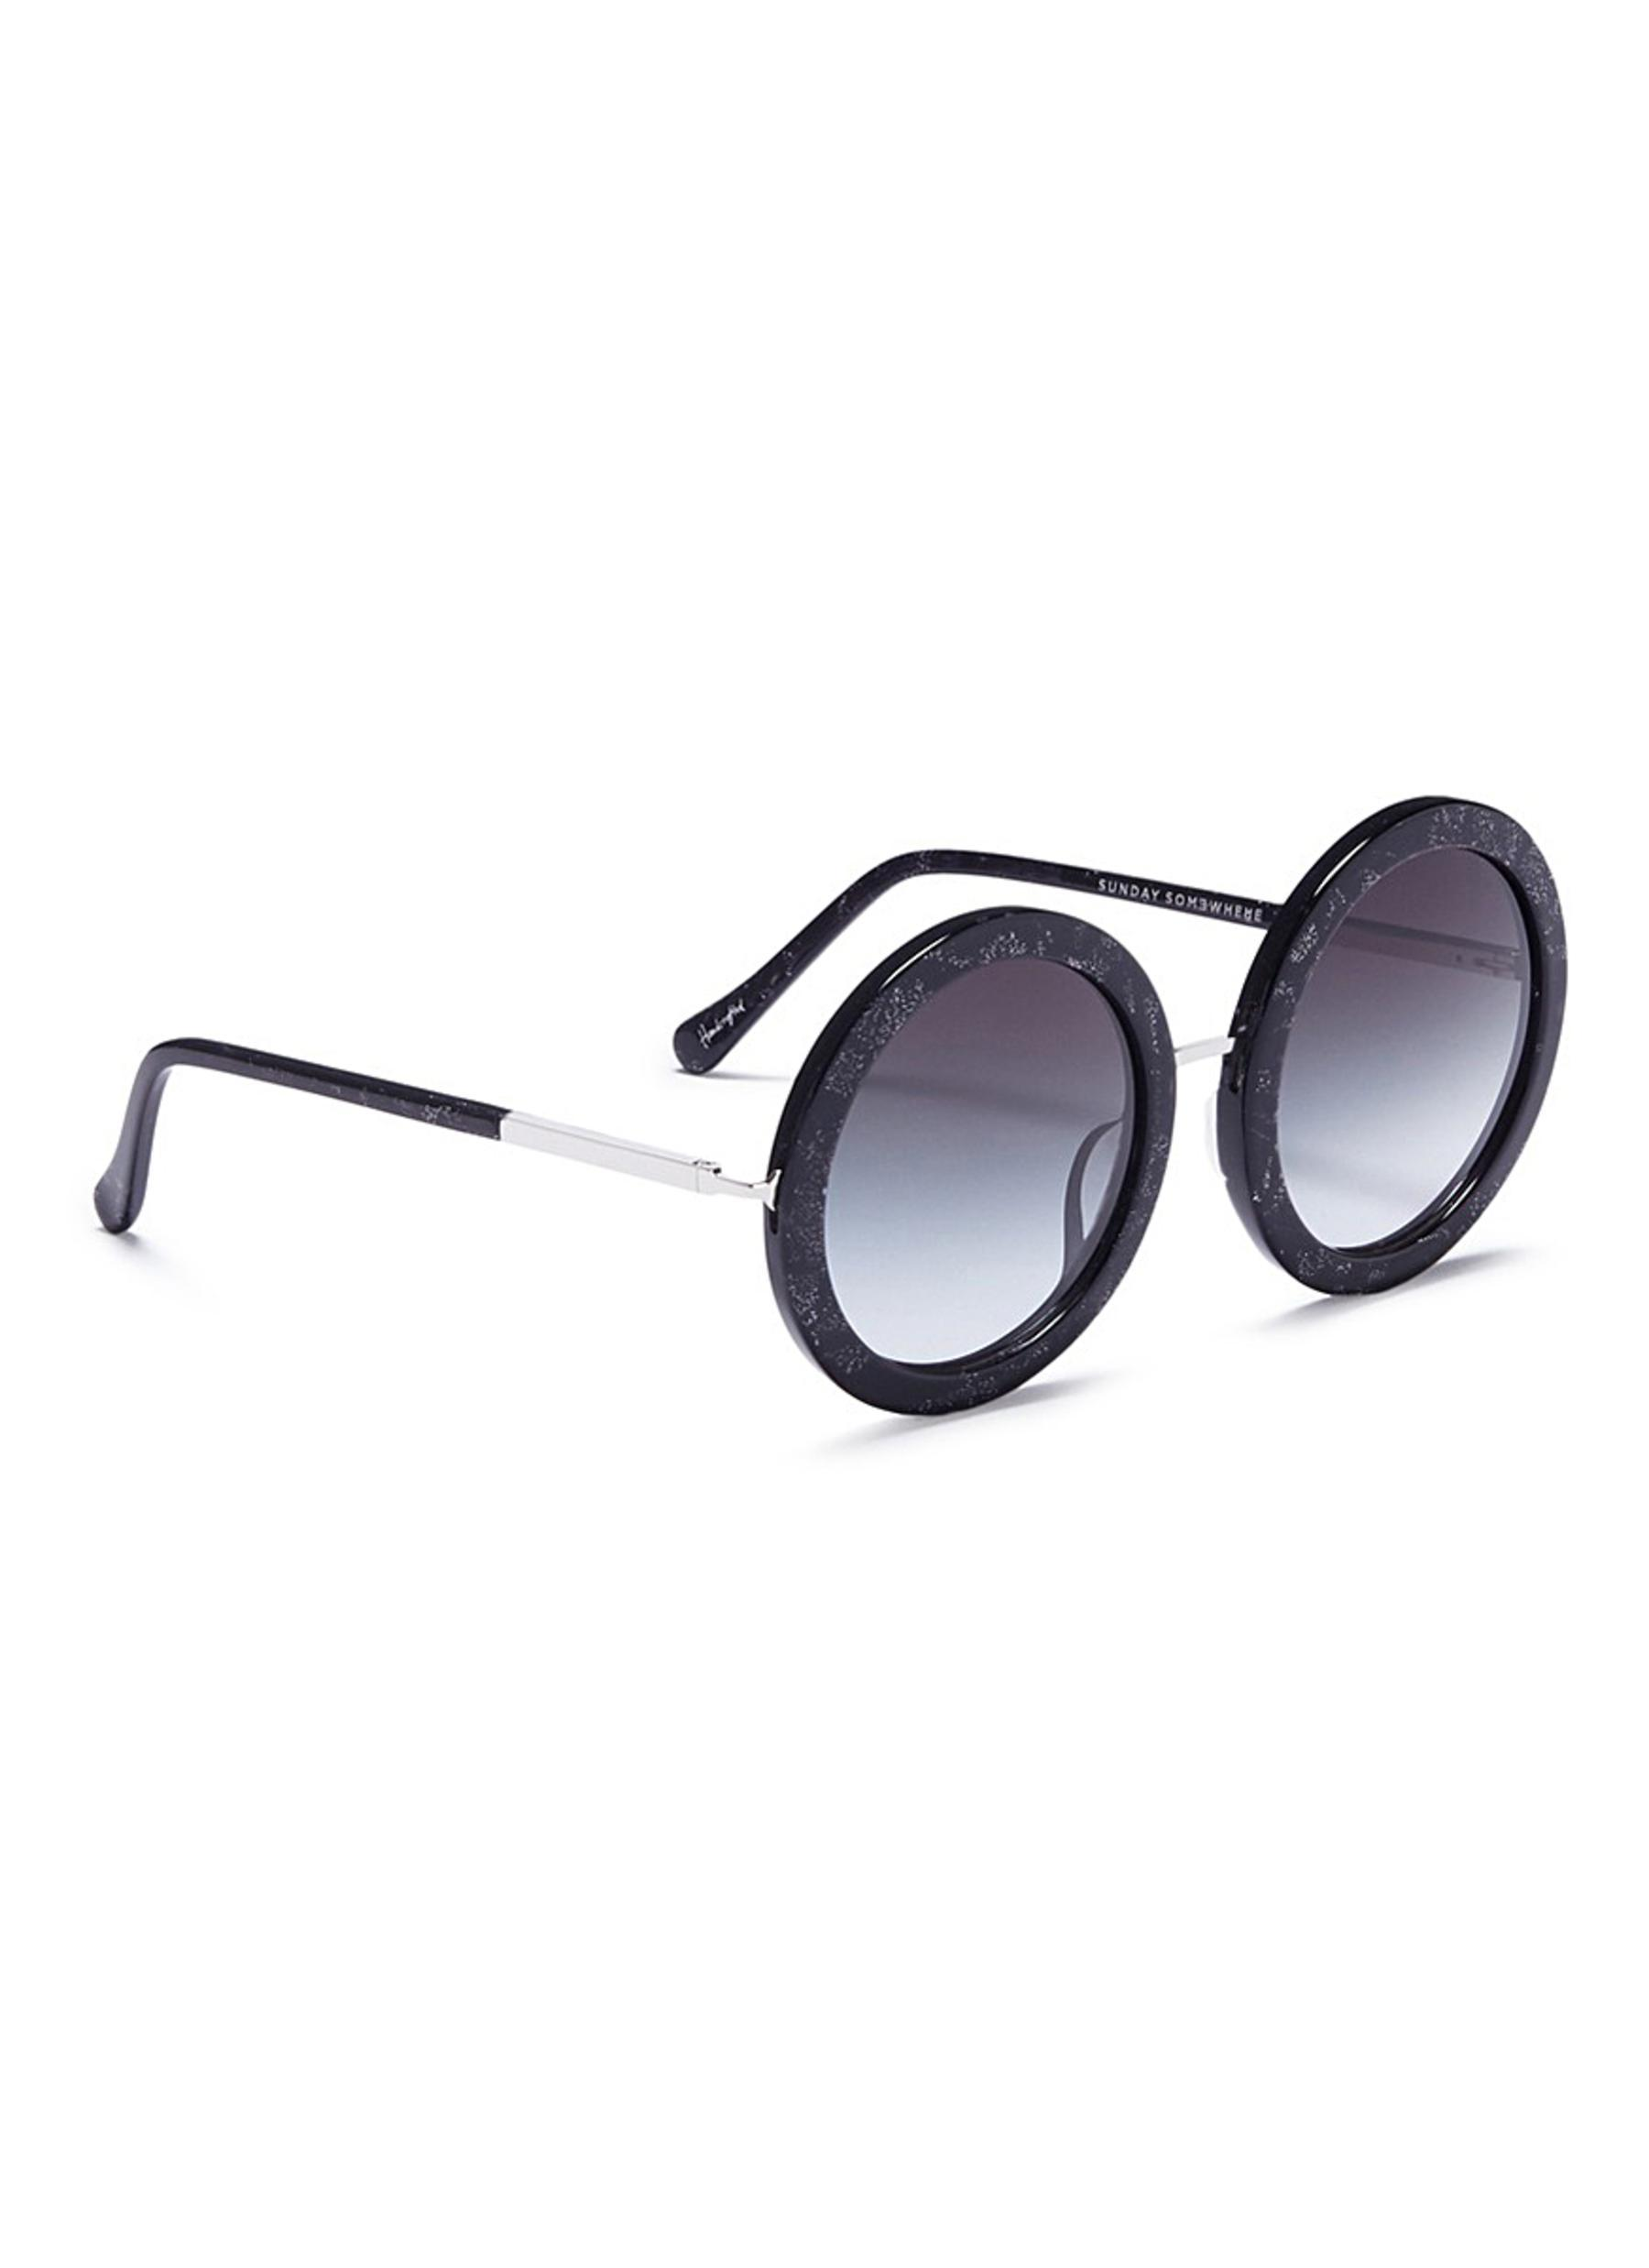 d22ba98ade1d8 Sunday Somewhere  isabella  Glitter Acetate Round Sunglasses in ...